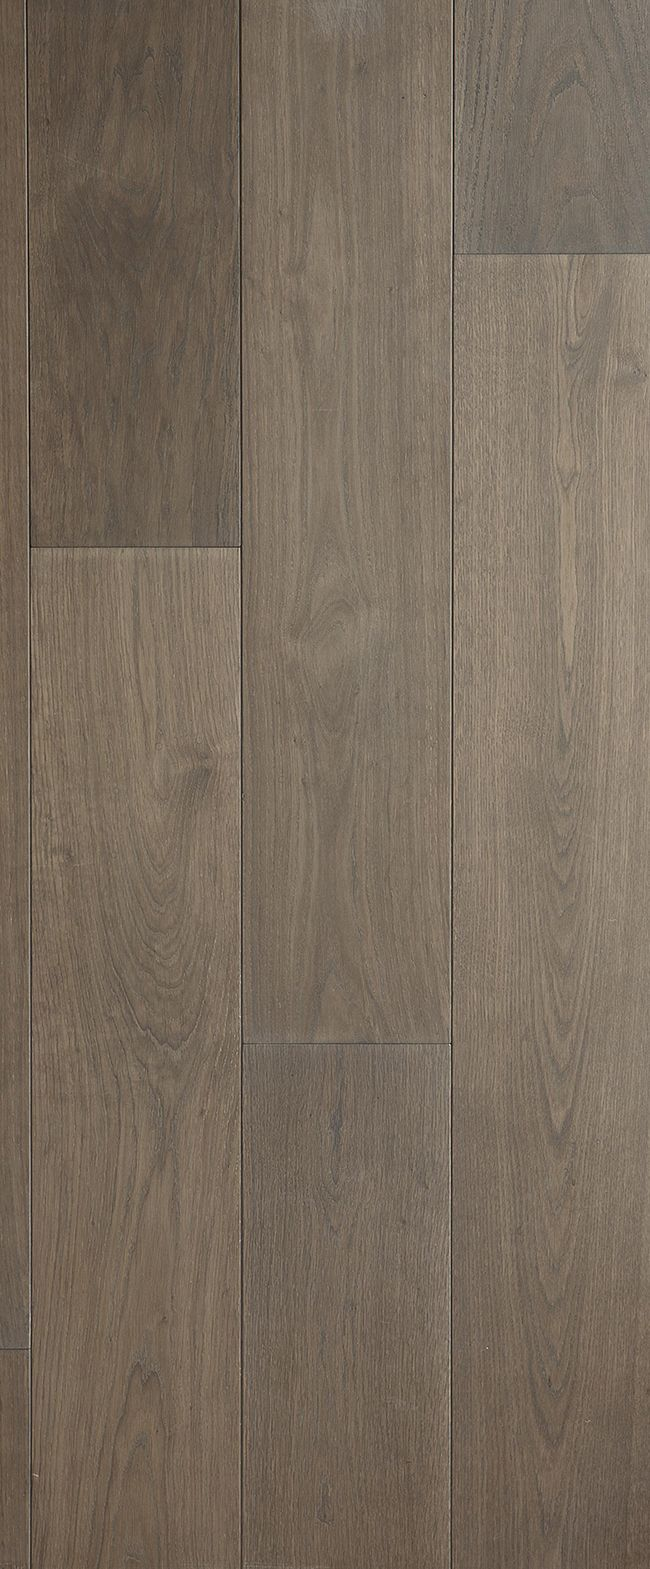 17 Best Images About Hardwood Floors On Pinterest Wide